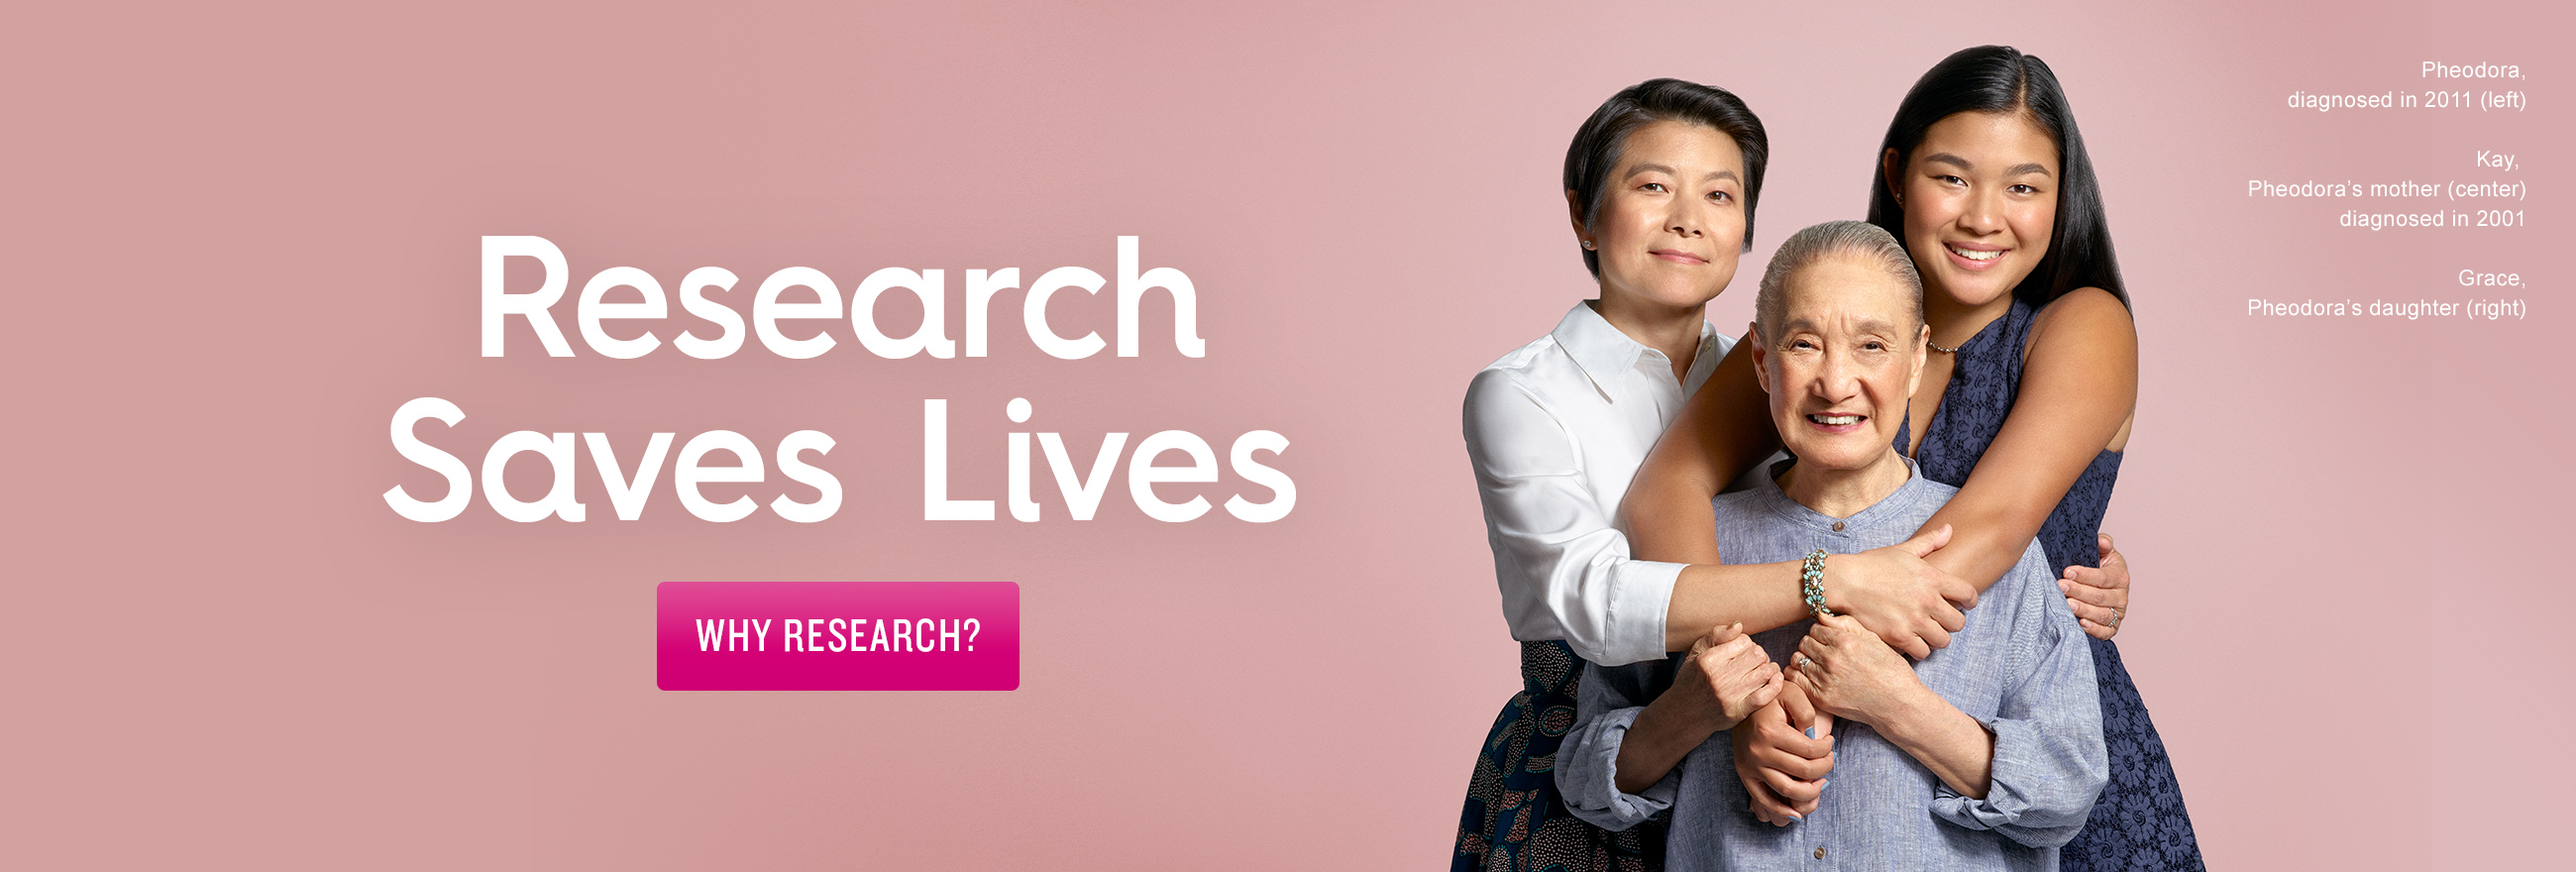 Research Saves Lives